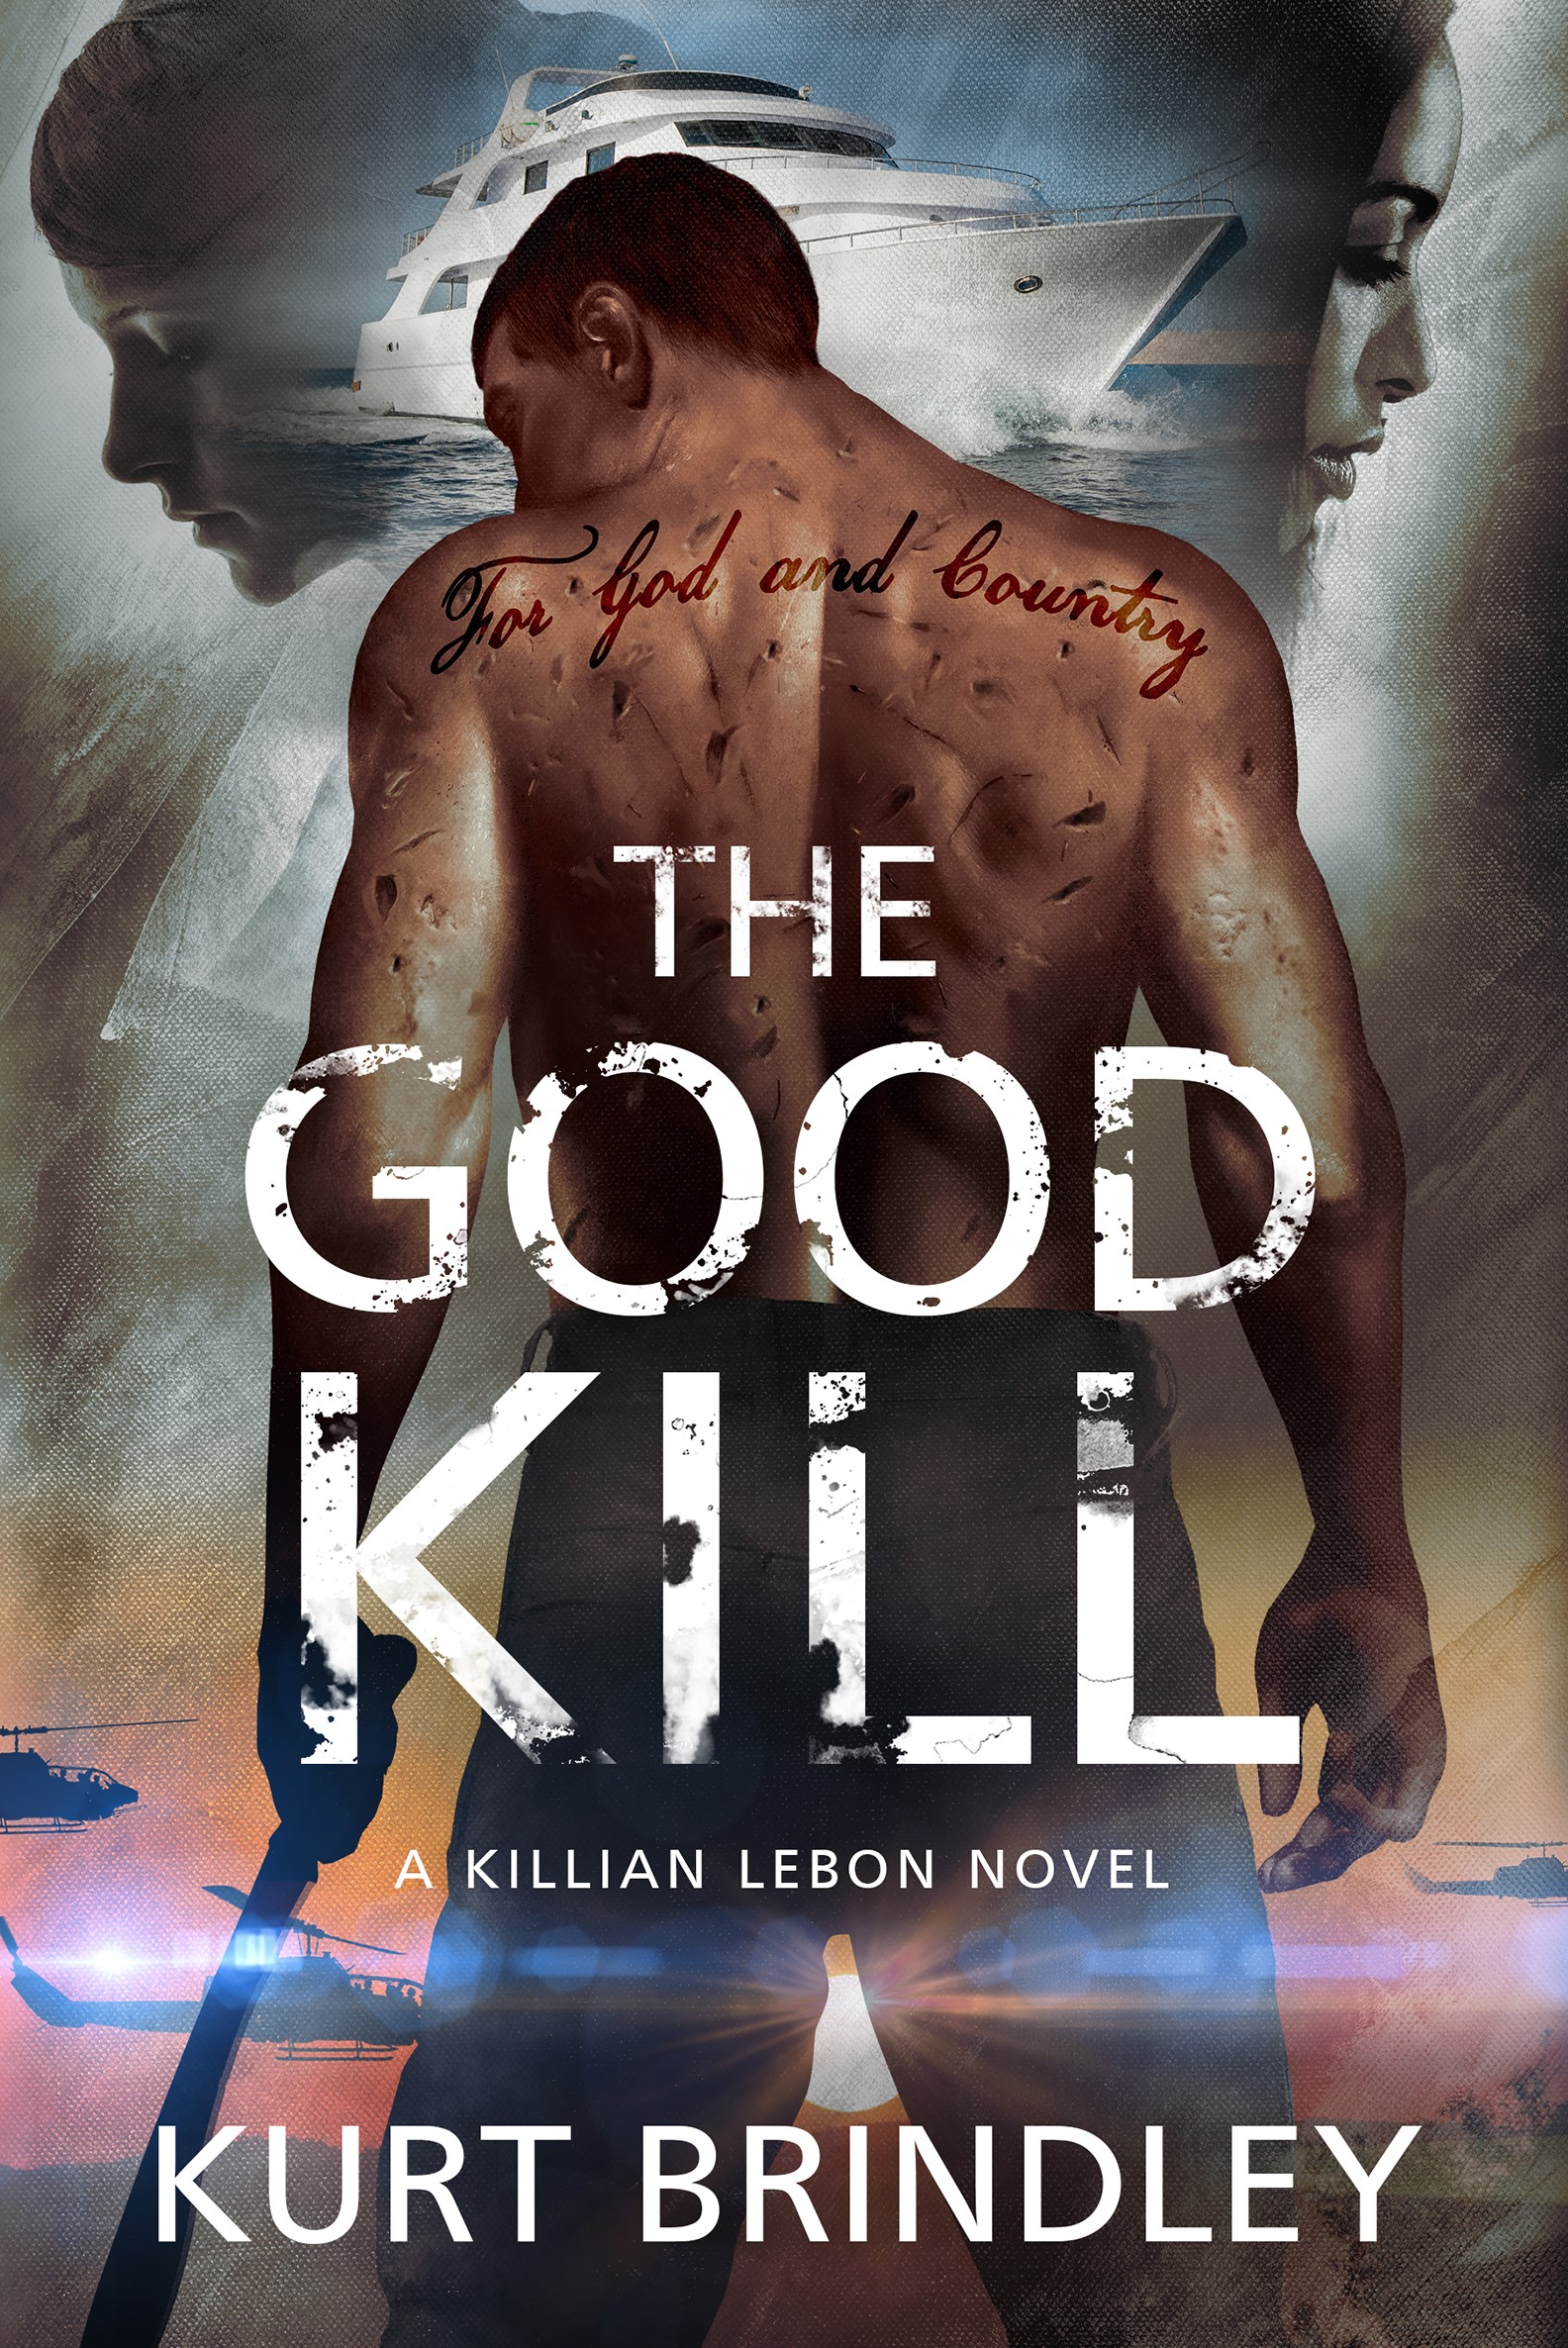 THE GOOD KILL